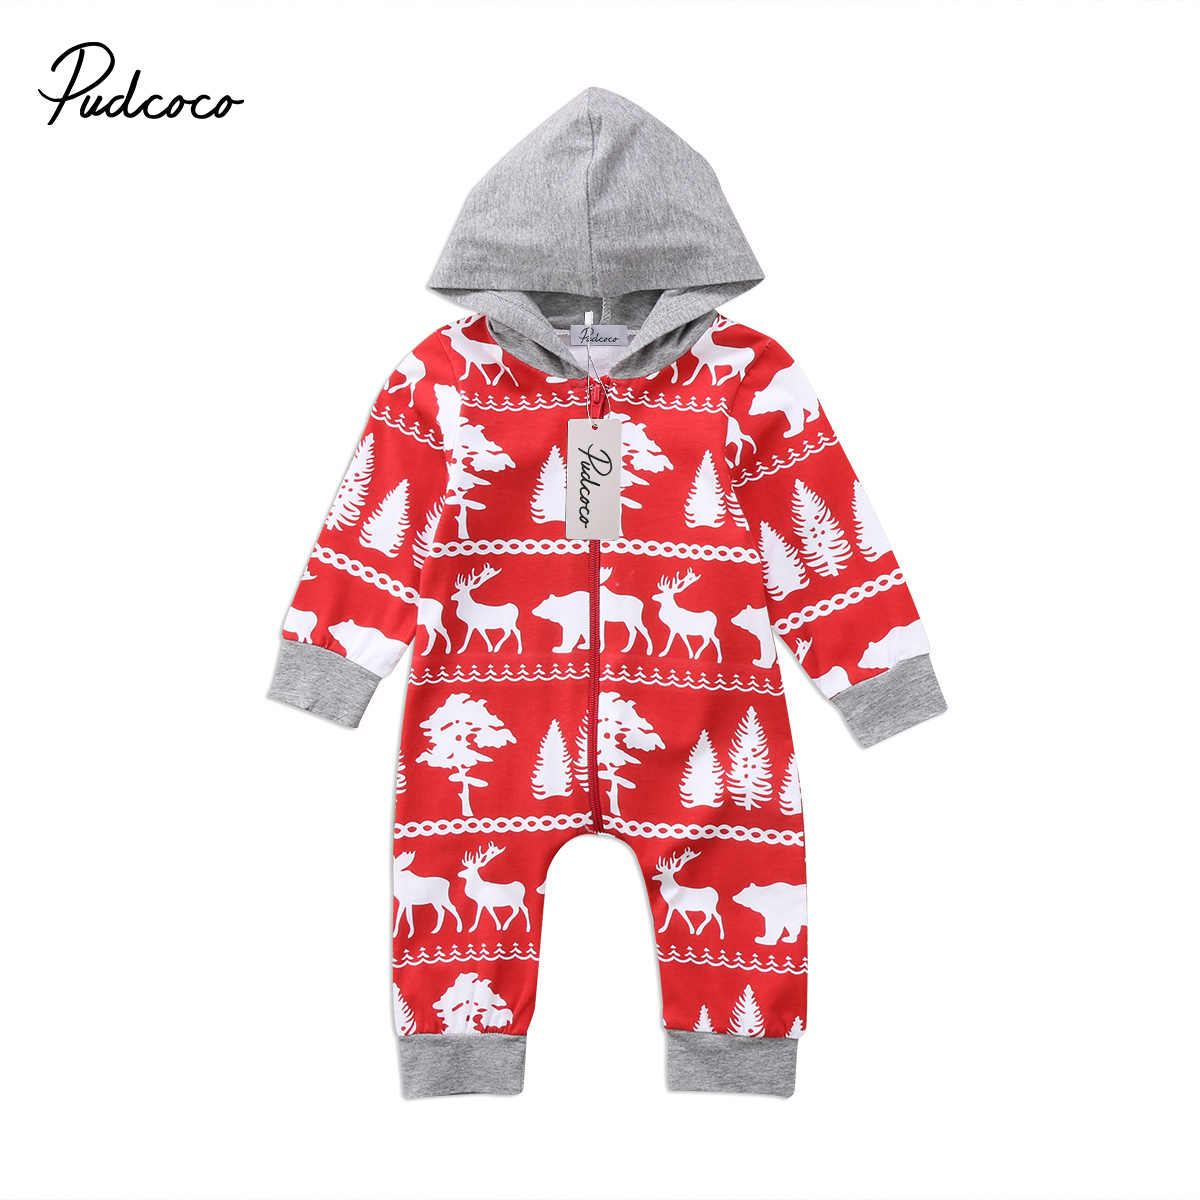 945c86ef1cde Detail Feedback Questions about Christmas Baby Boys Girls Hooded Romper  Jumpsuit Hoodie Clothes Outfits on Aliexpress.com